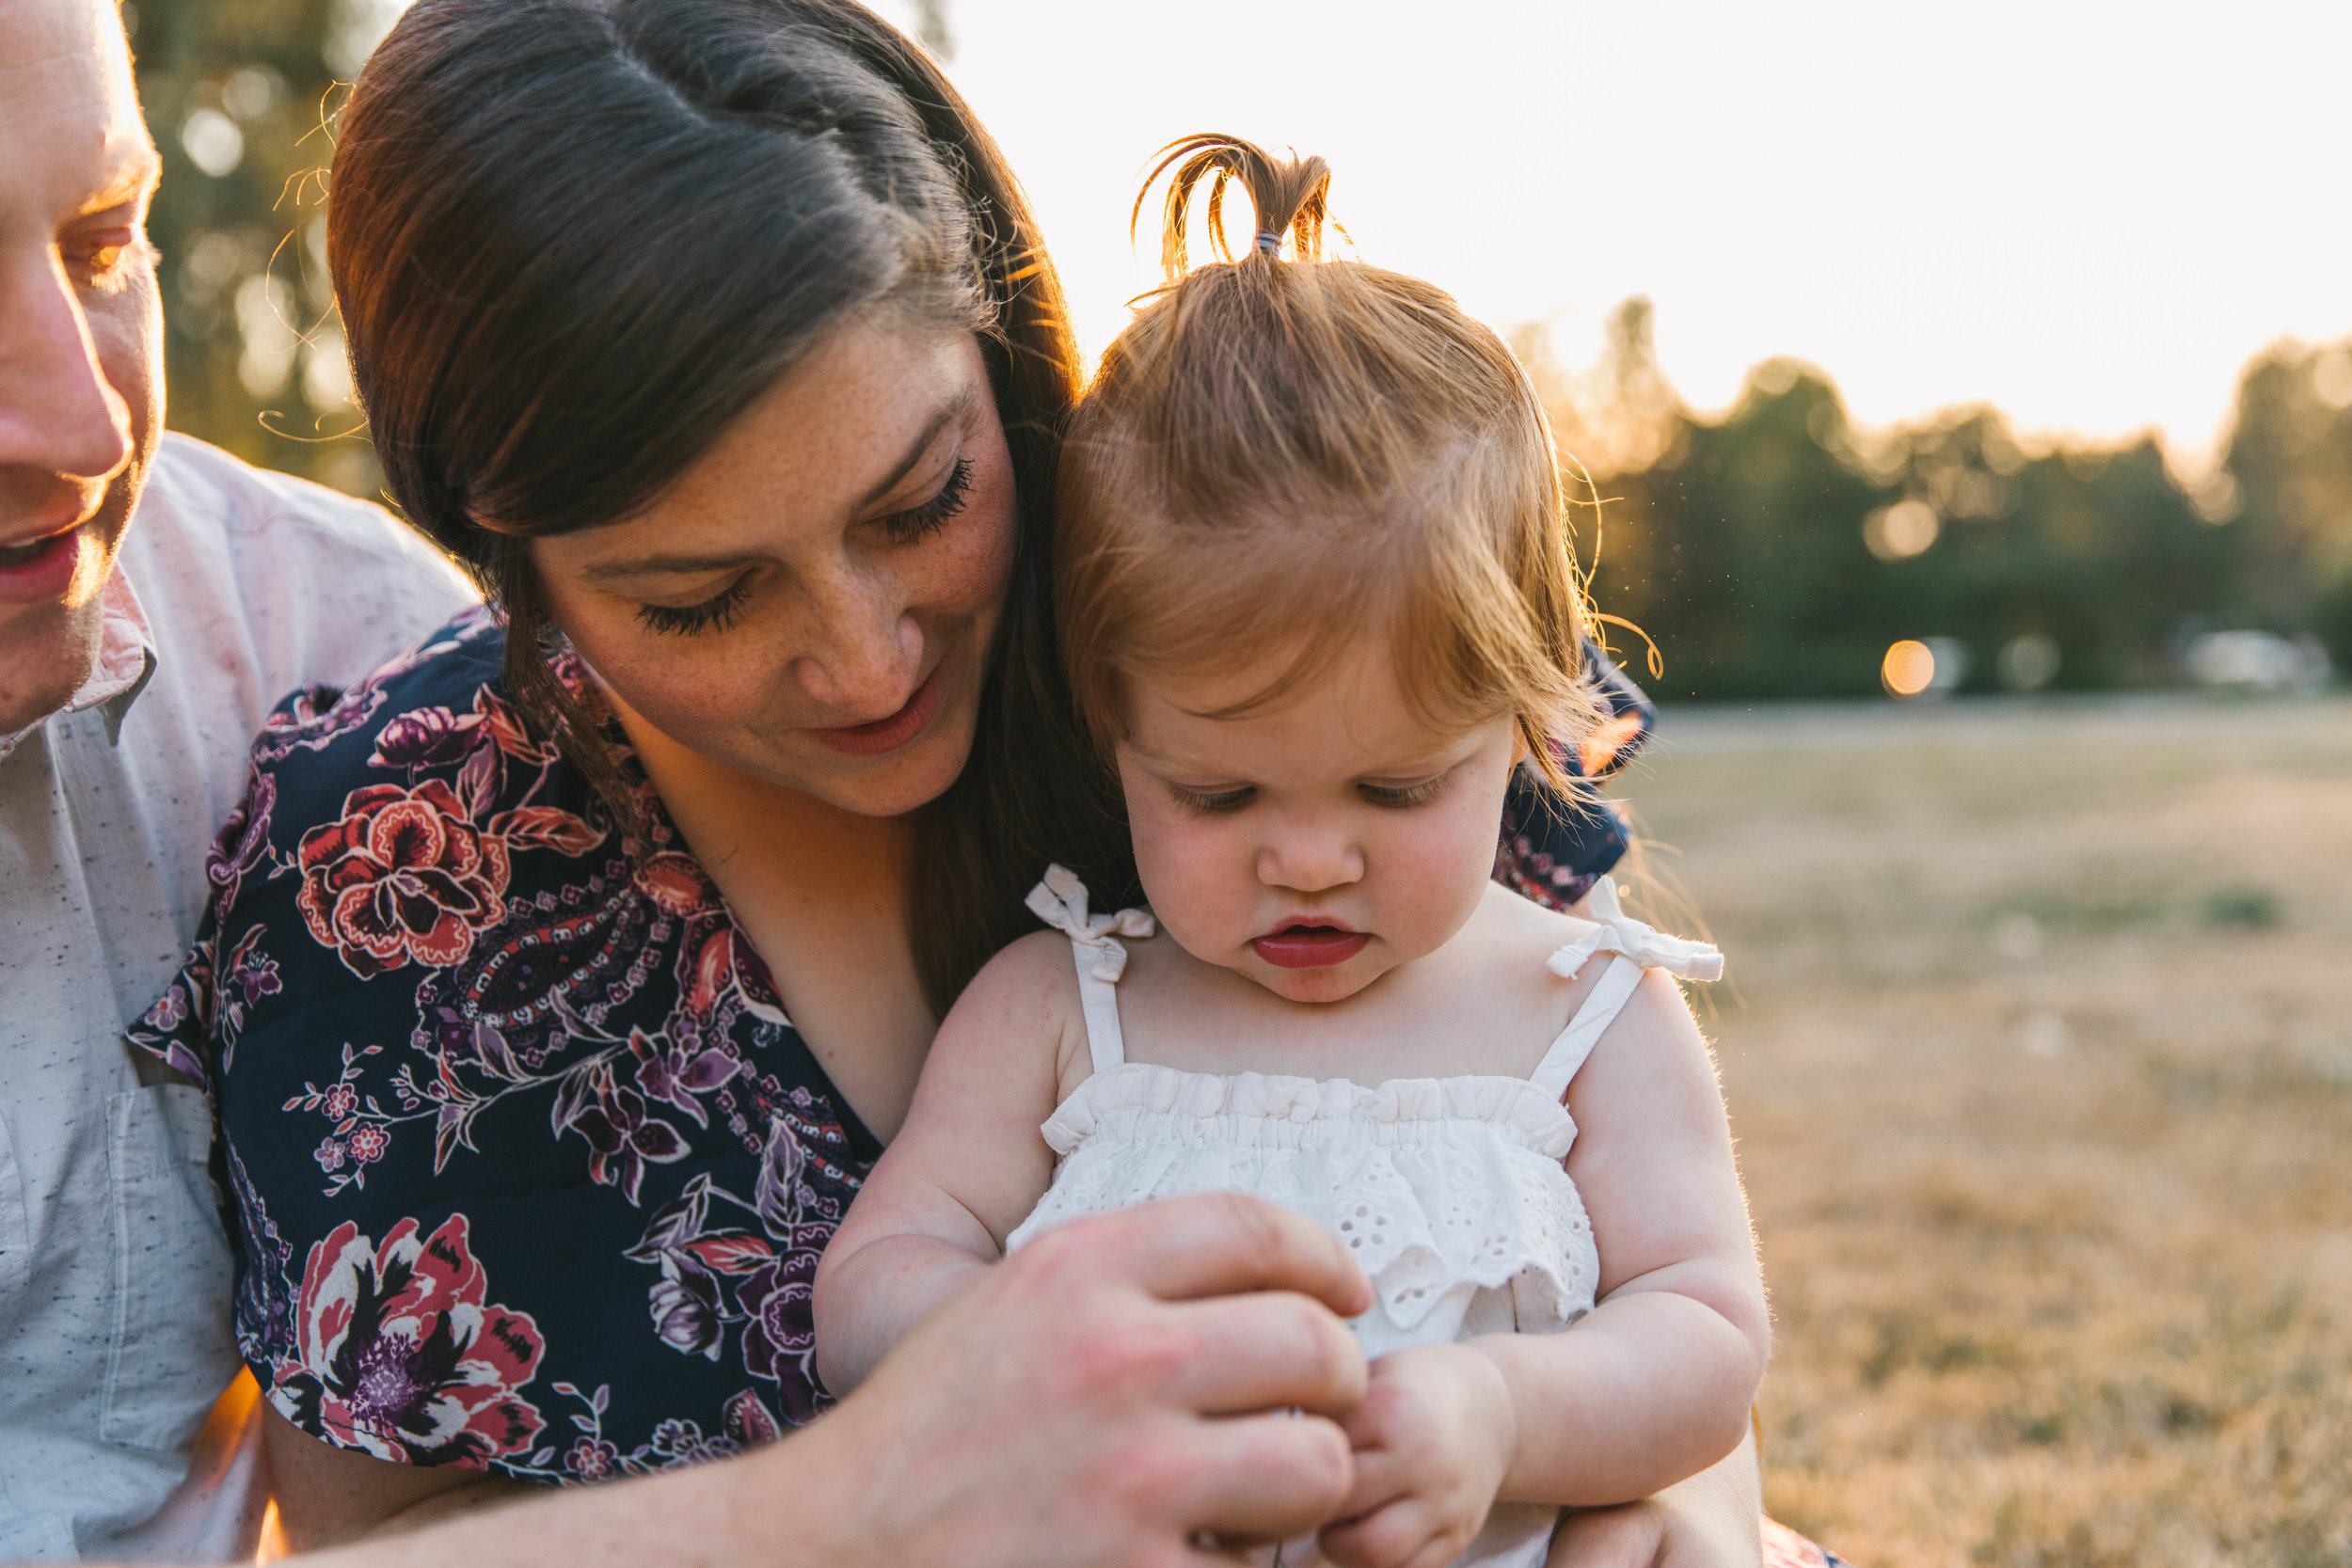 Playful and sweet family session in Issaquah at golden hour and twilight Mom and Dad with their toddler photographed by Chelsea Macor Photography in a playful and intimate way.jpg